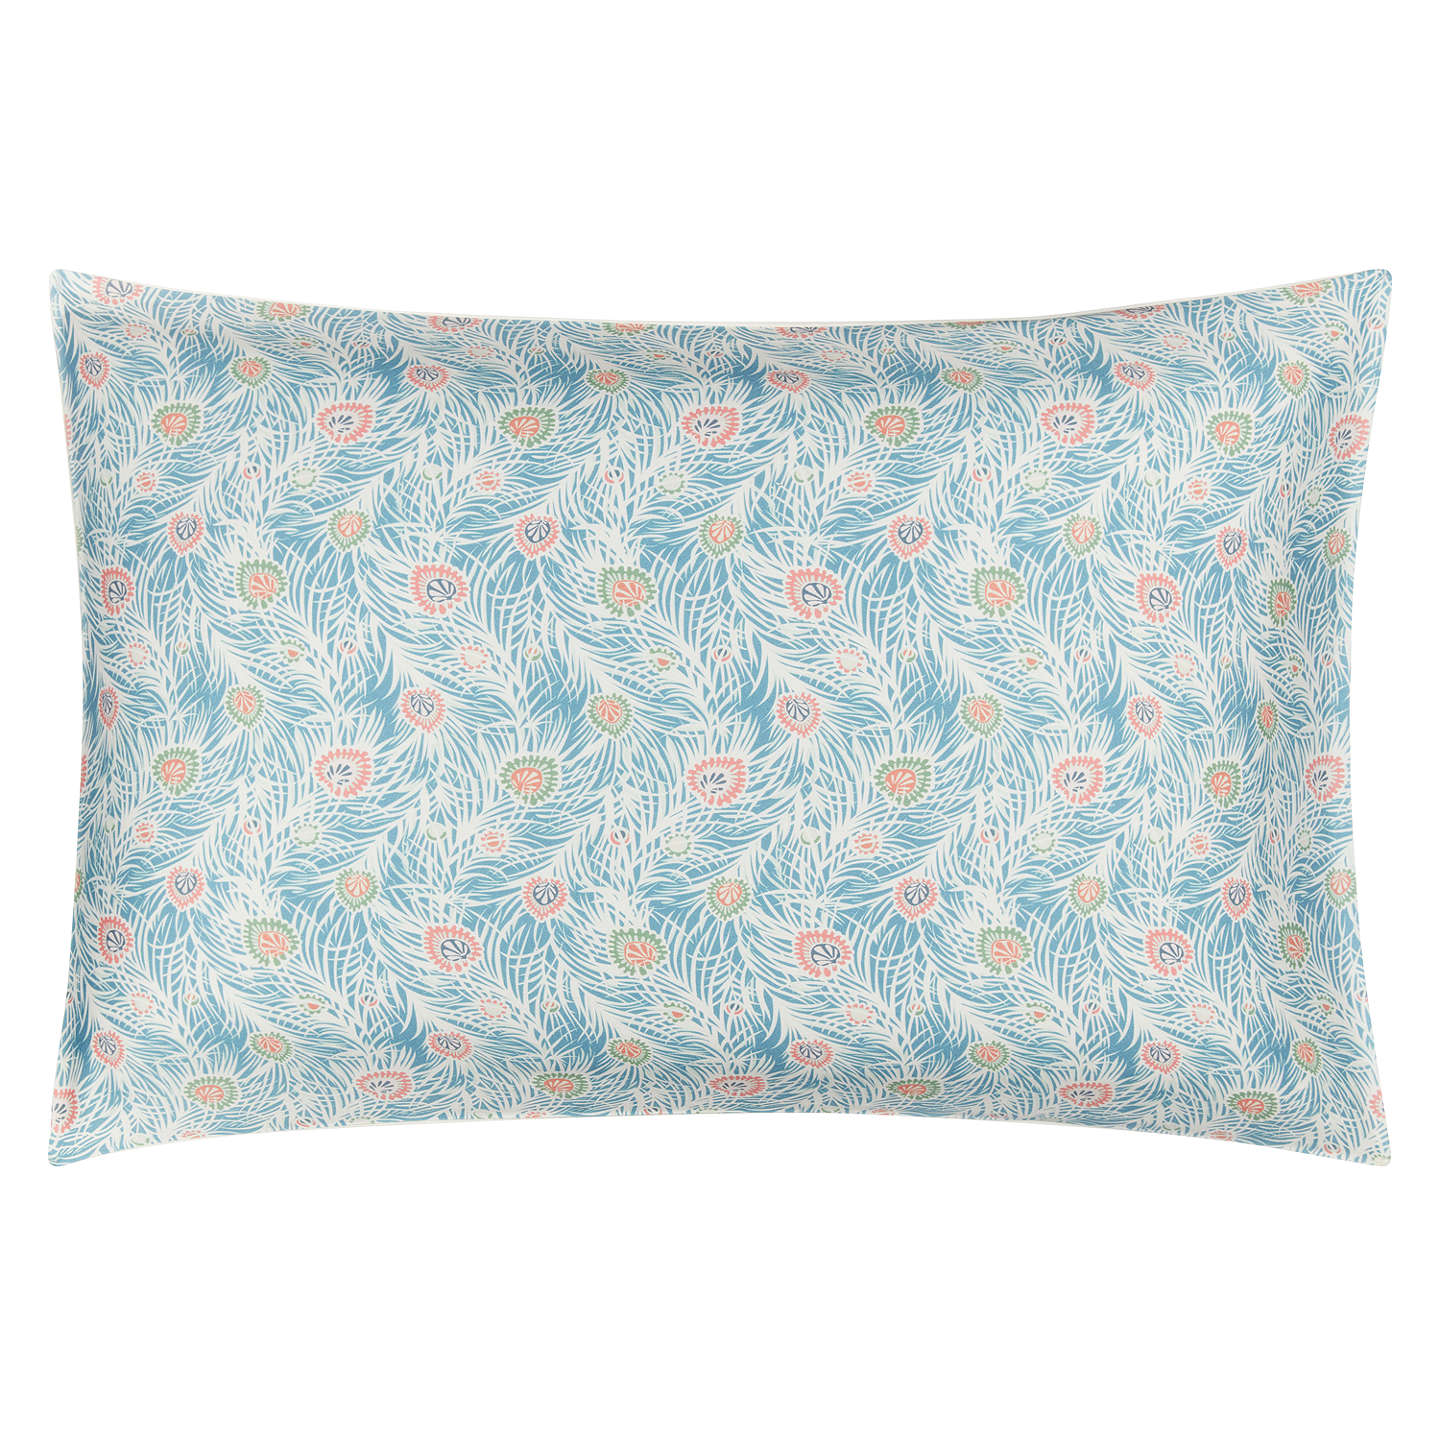 BuyLiberty Fabrics & John Lewis Goldman Print Cotton Duvet Cover, Super King, Mid Blue Online at johnlewis.com